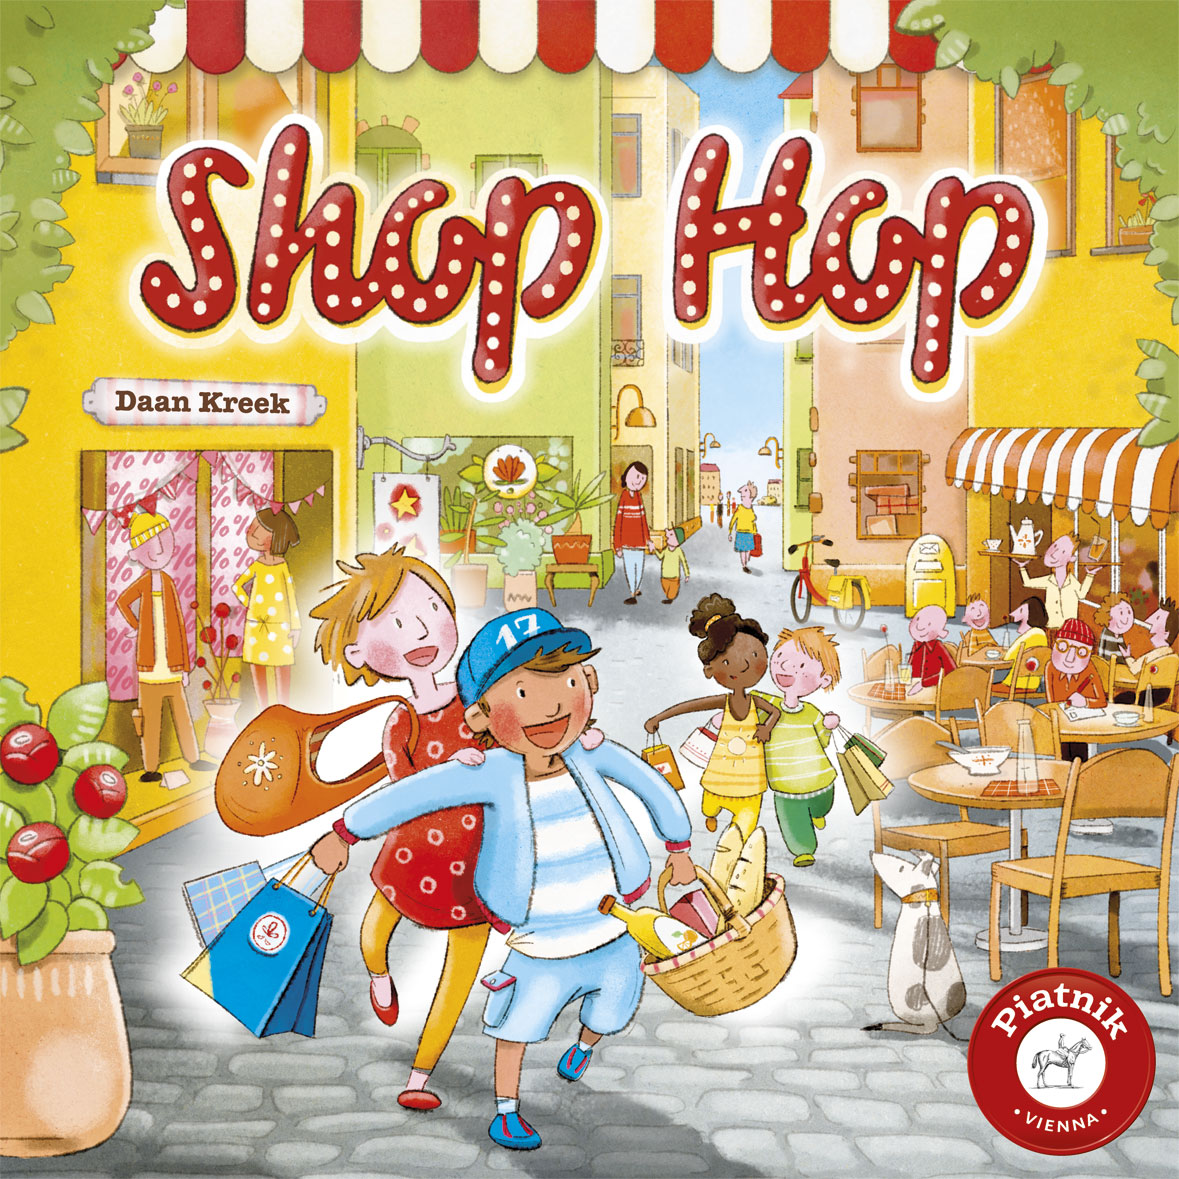 shop_hop_658877_cover.jpg